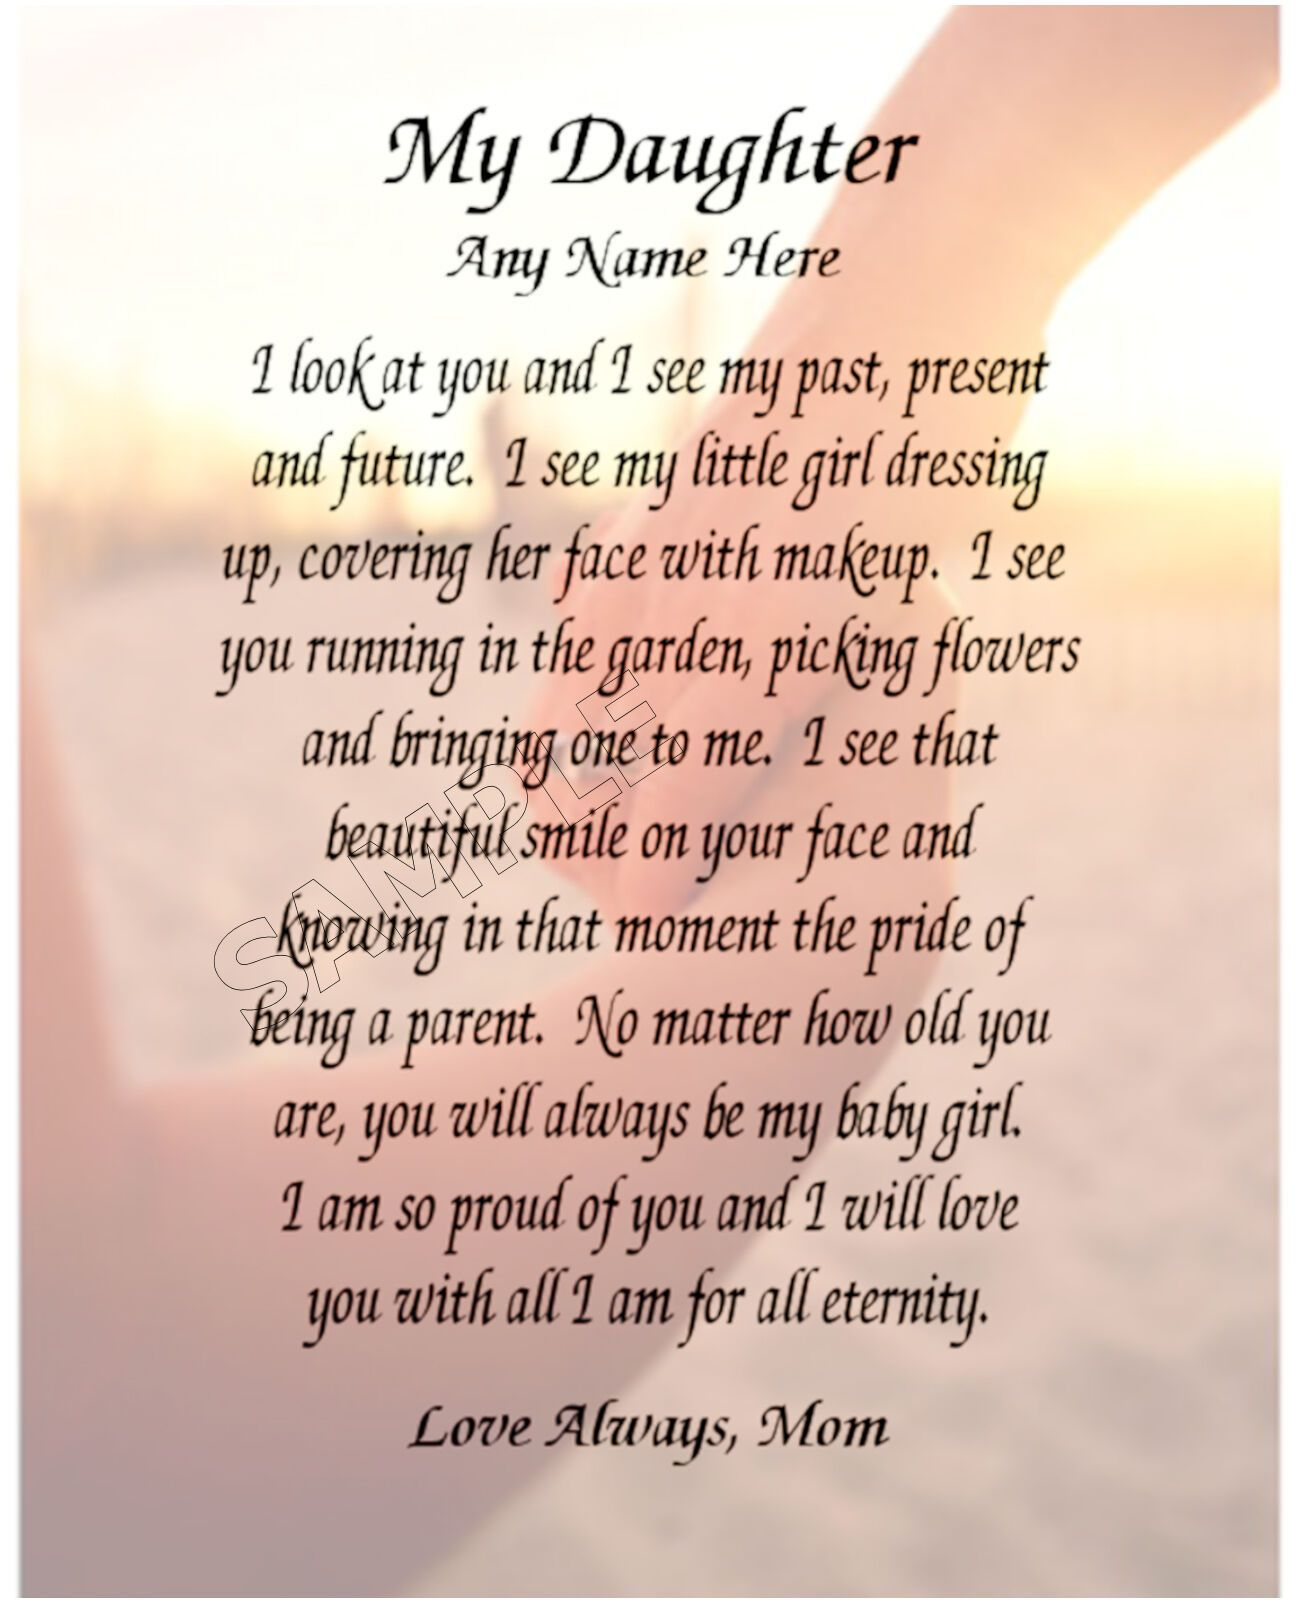 Details About My Daughter Personalized Art Poem Memory Birthday